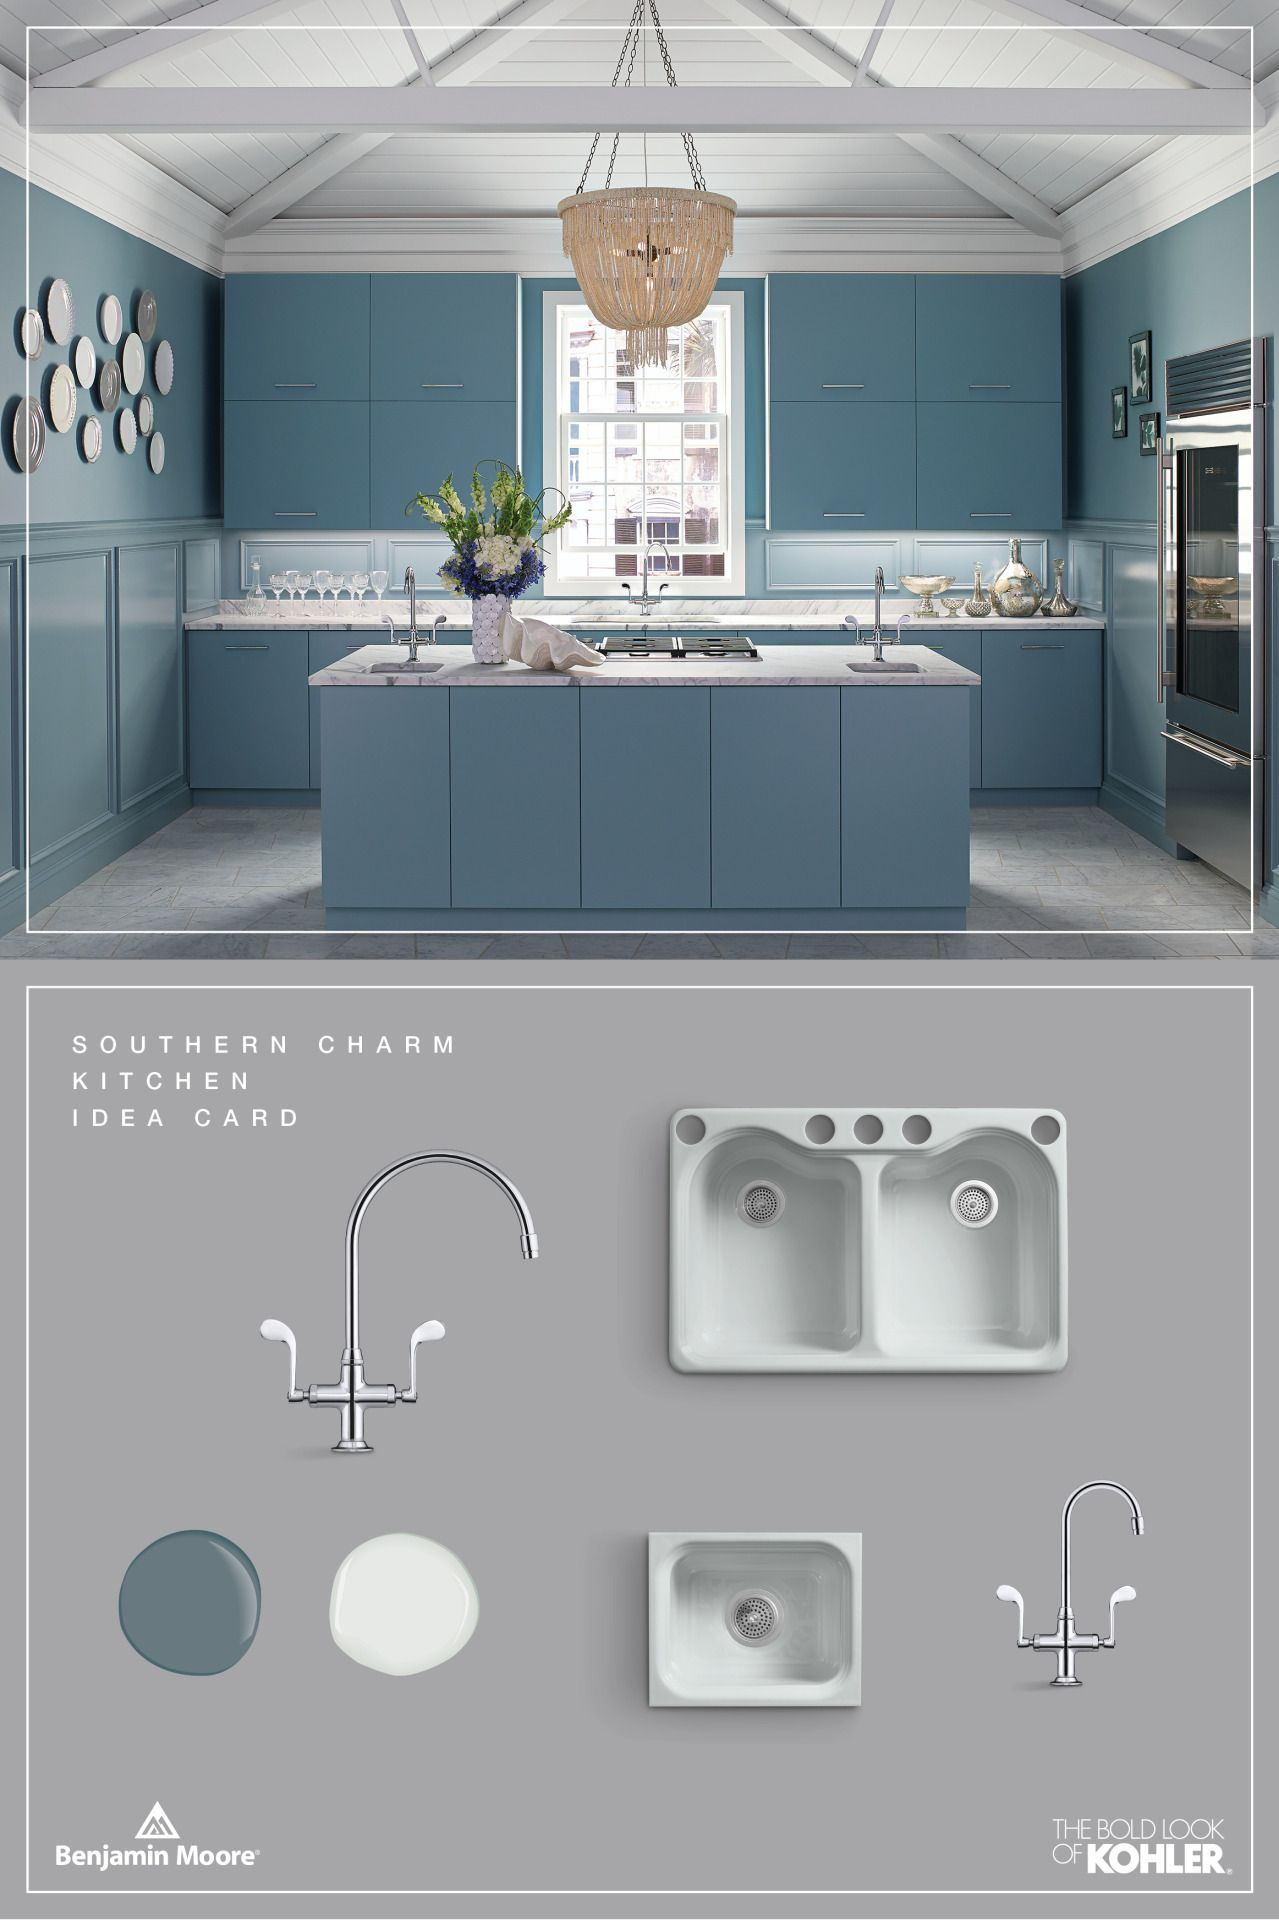 Kohler Product Northland Bar Sink Essex Faucet Hartland Kitchen Benjamin Moore